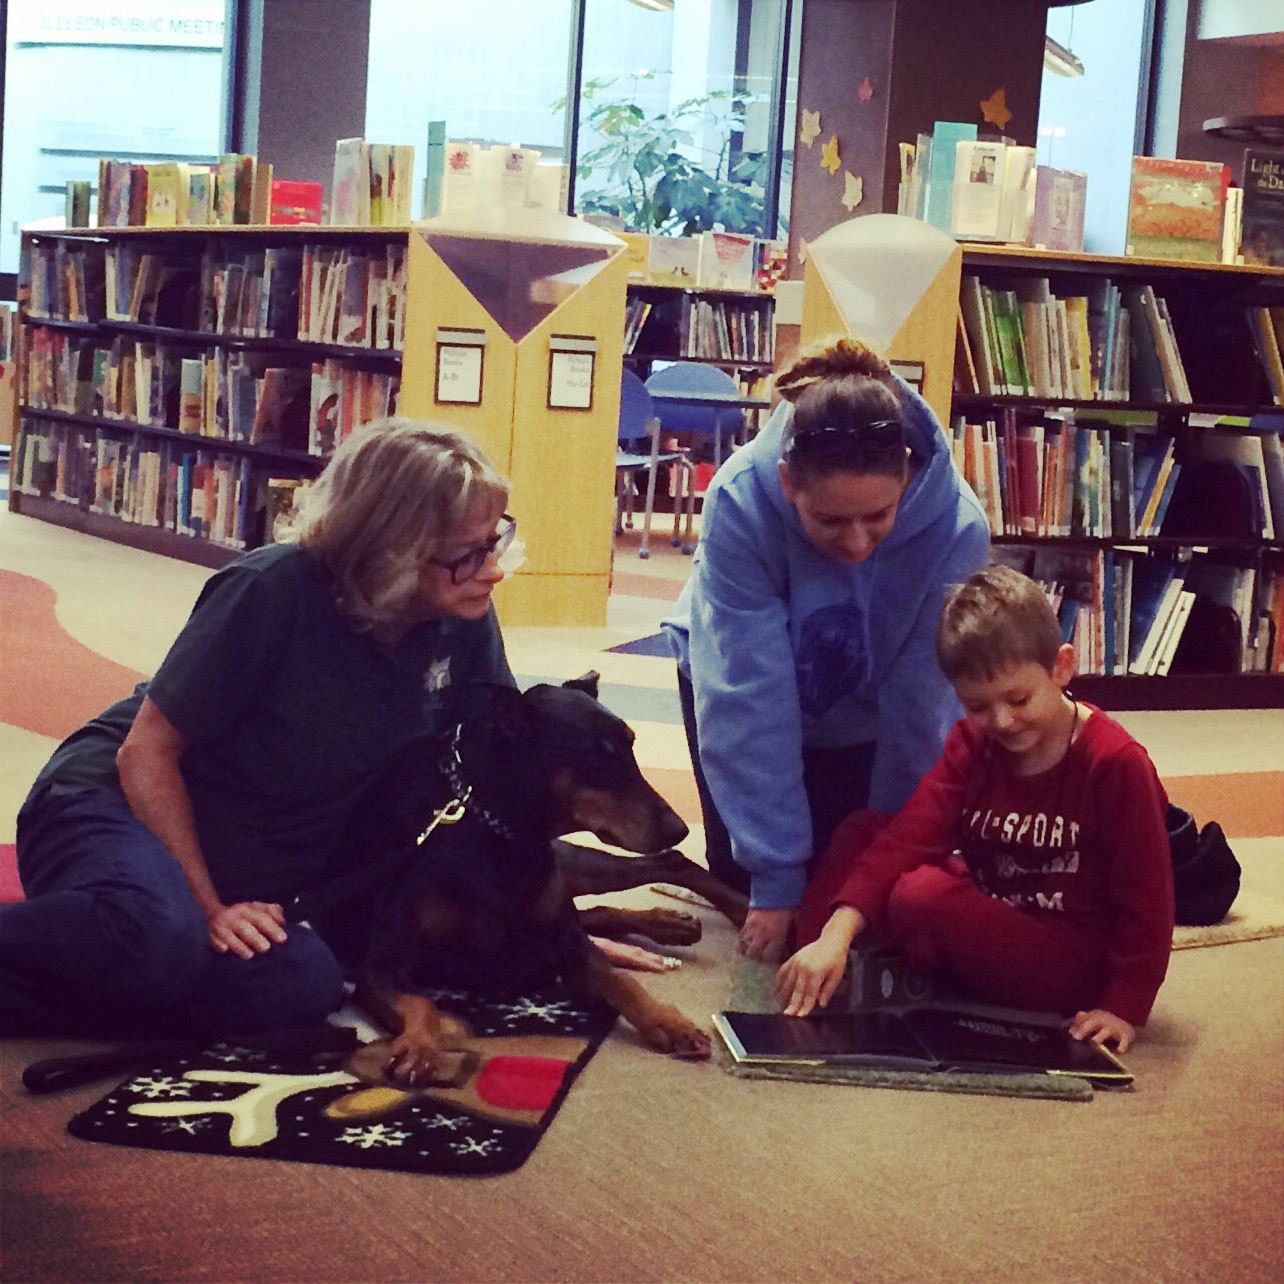 Sioux City resident Dawn Cavenee encourages her son as he reads aloud to an eager Doberman from the K-9 S.T.A.R.S. program.